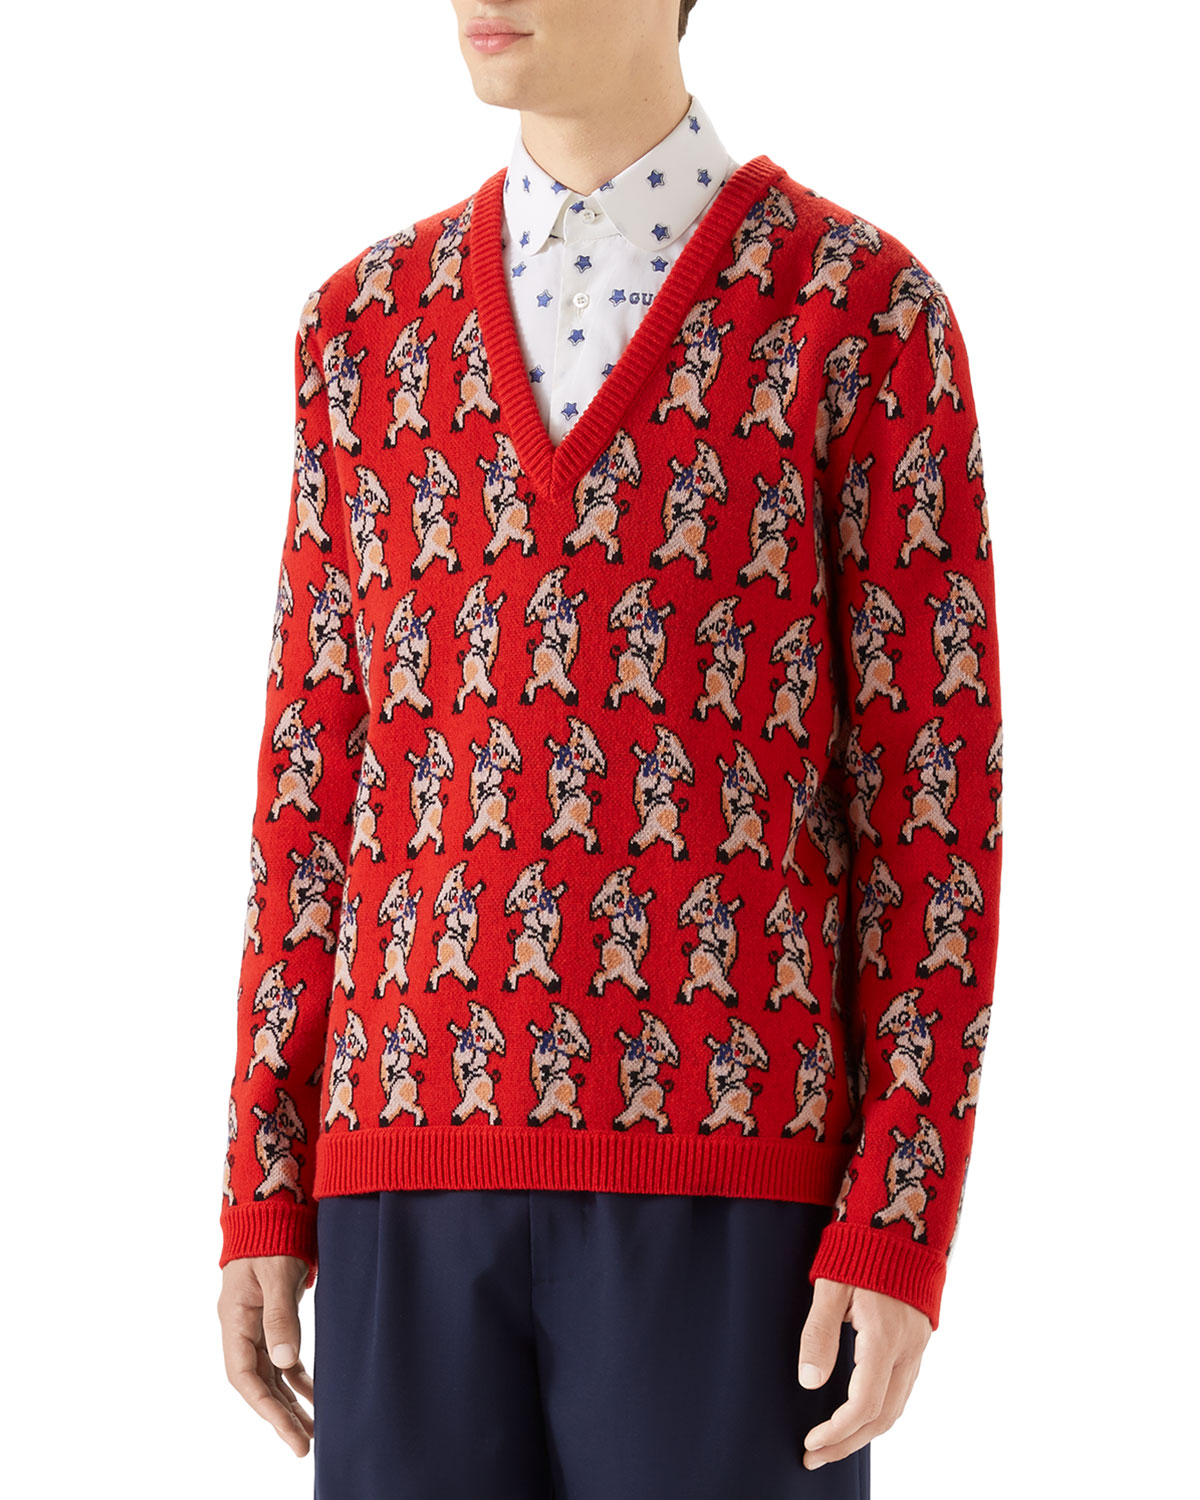 a38d54f55e8 Gucci Men s Pig-Intarsia V-Neck Sweater